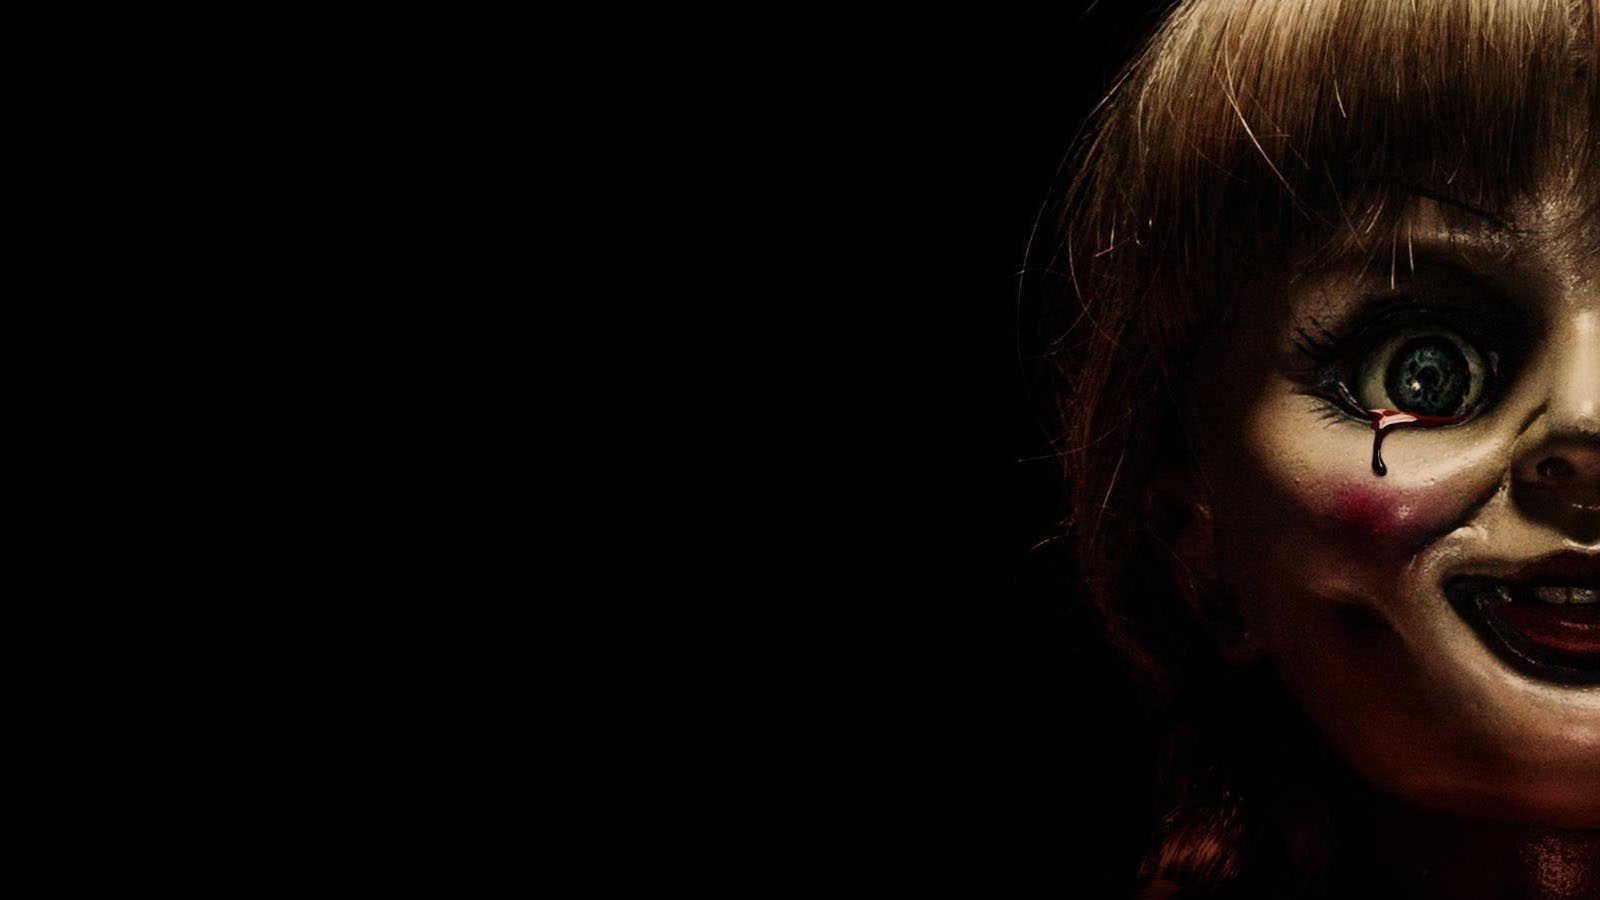 ... Mark Albright in Movies with Tags: Annabelle hd wallpaper Horror Movie